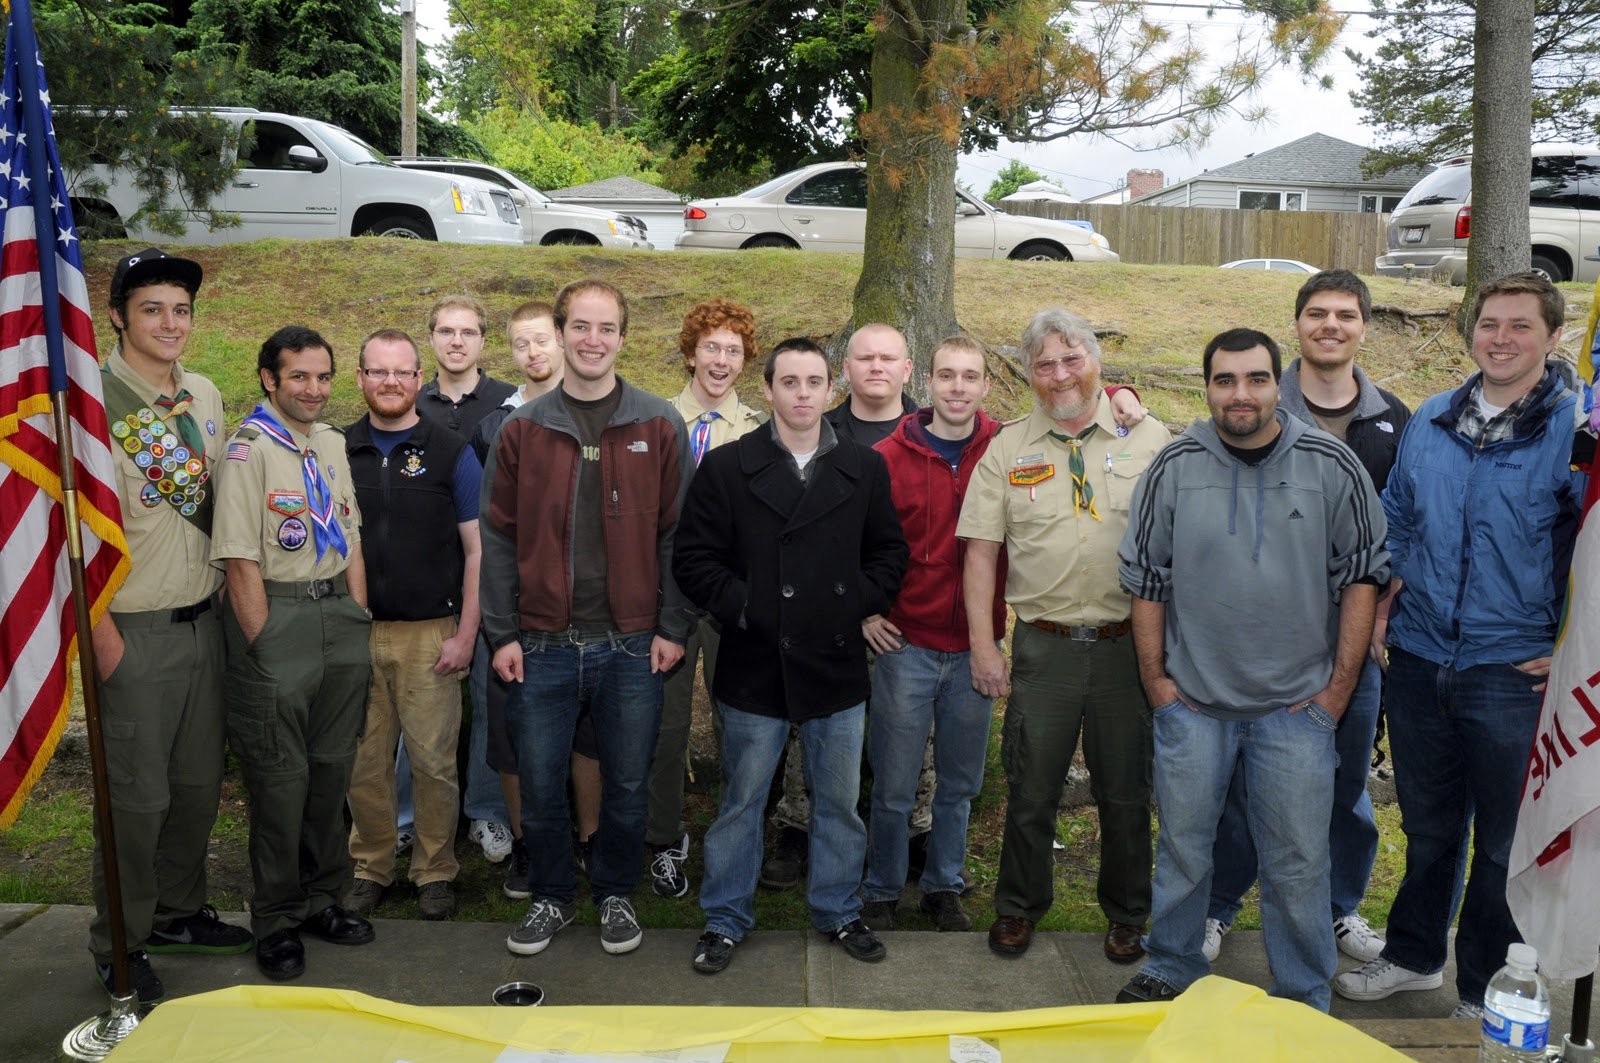 of the Eagle Scouts from